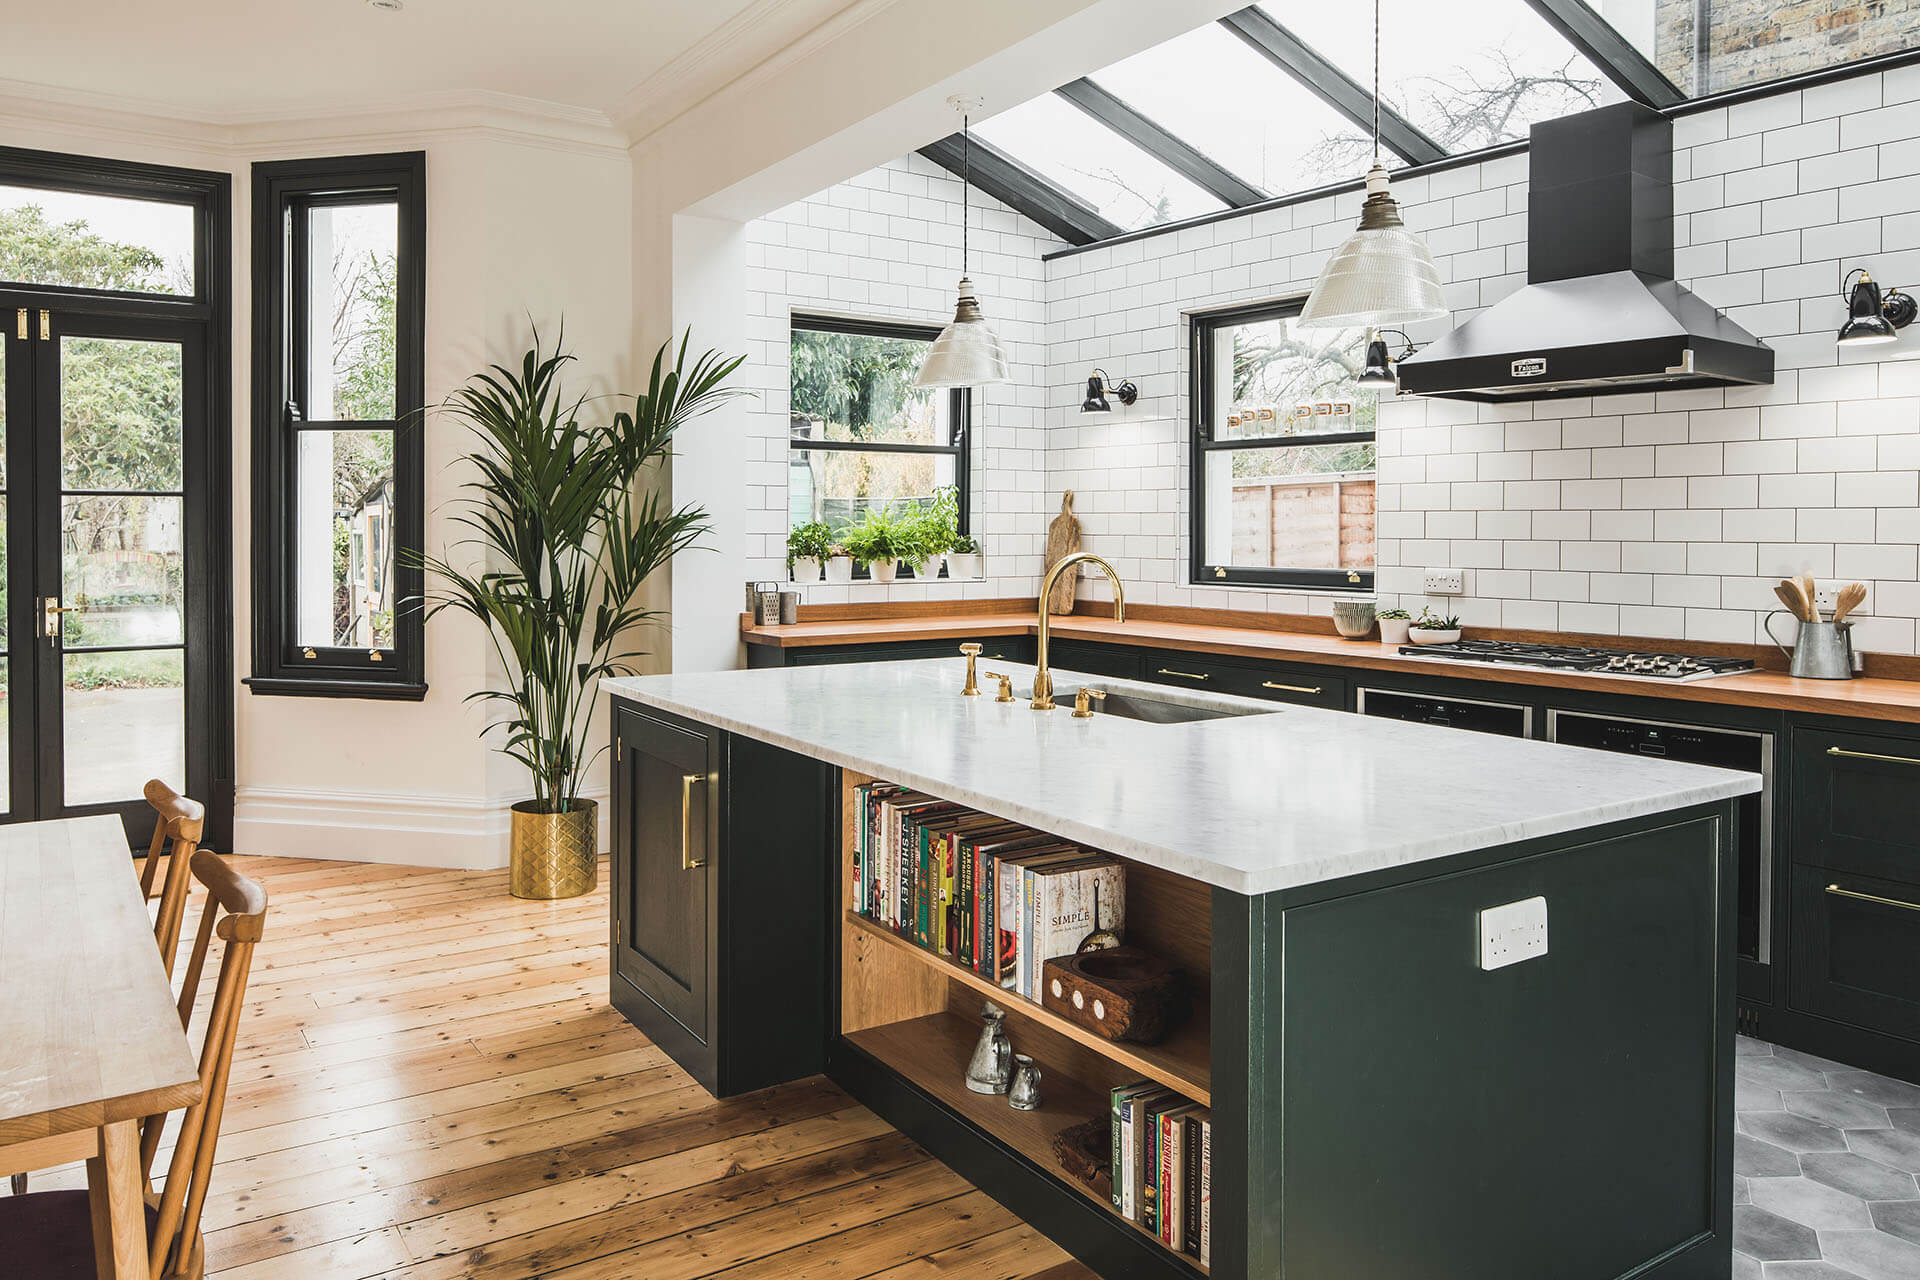 8 Kitchen Design Trends For 2019 Sustainable Kitchens